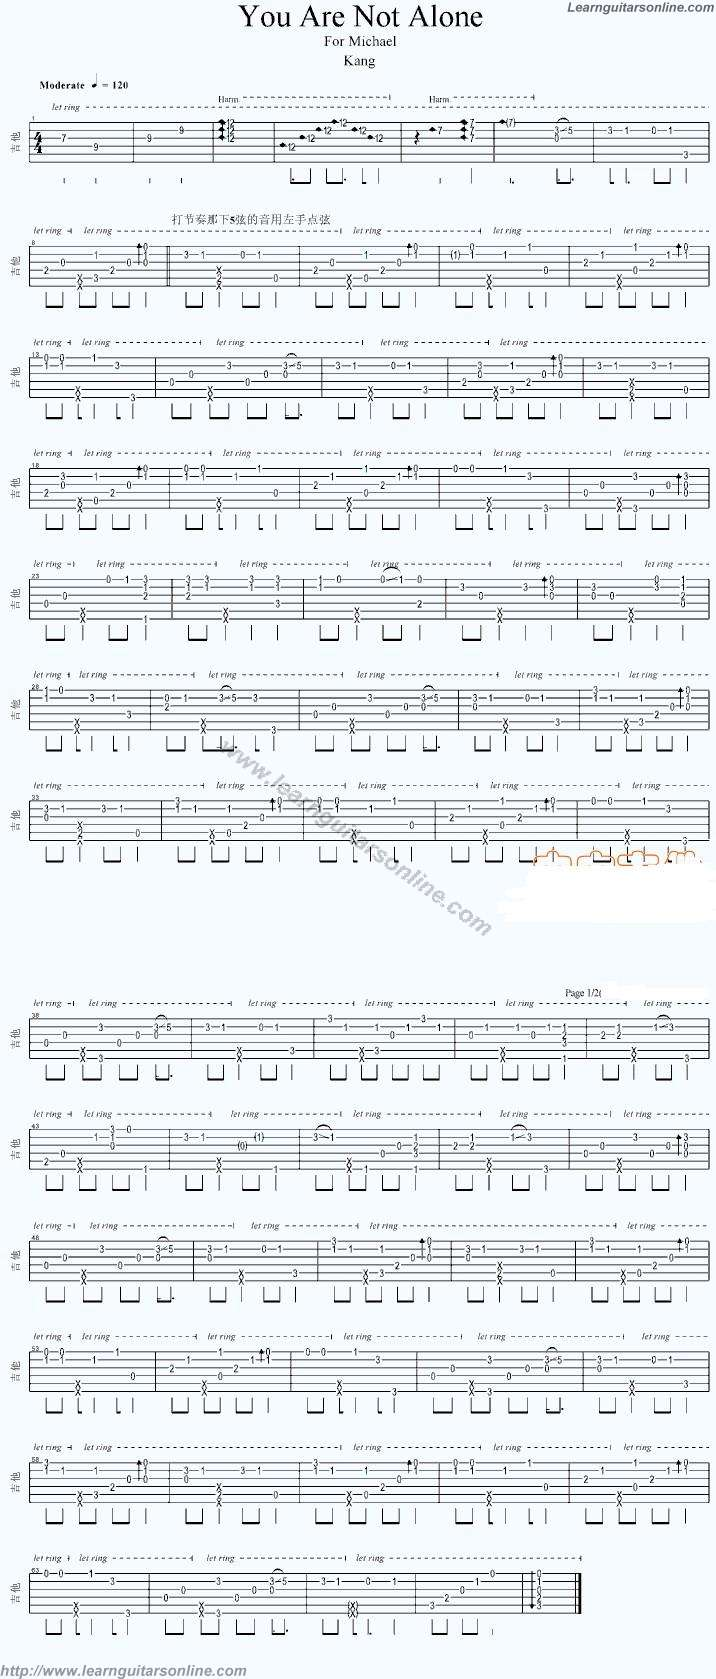 You Are Not Alone By Michael Jackson Free Guitar Sheet Music Tabs